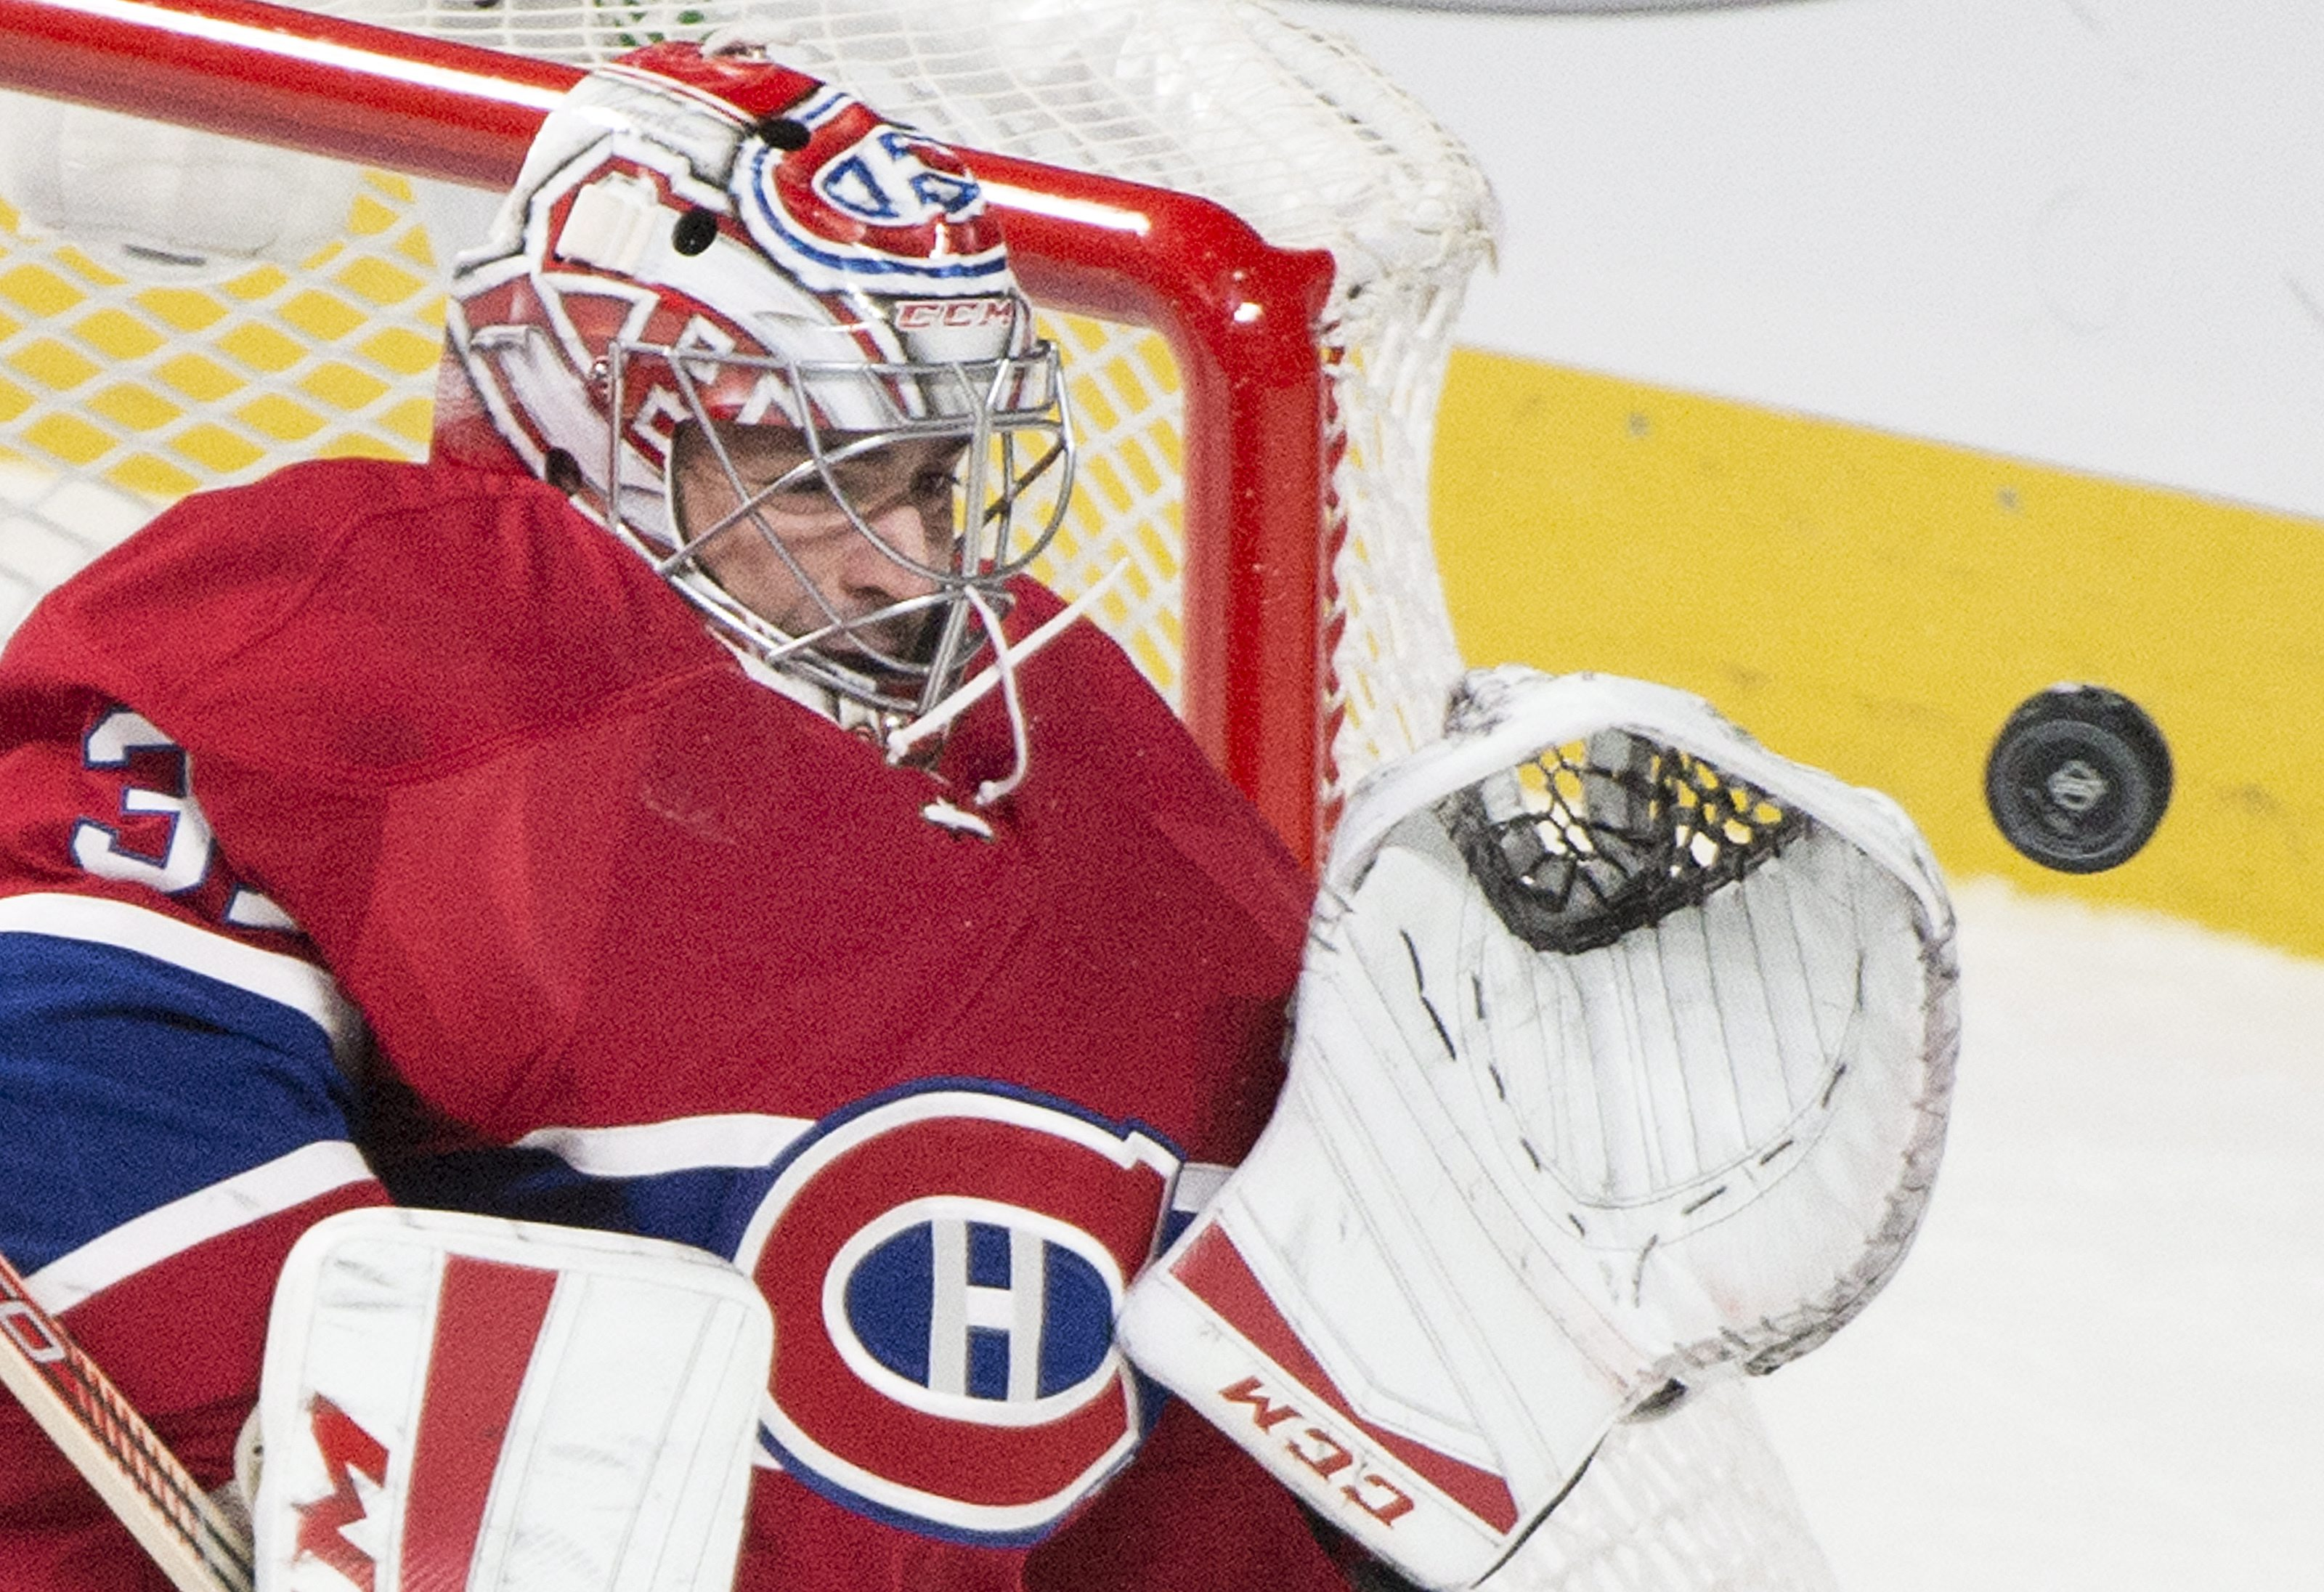 Montreal Canadiens goaltender Carey Price makes a save against the St. Louis Blues during the third period of an NHL hockey game, Tuesday, Oct. 20, 2015 in Montreal. (Graham Hughes/The Canadian Press via AP) MANDATORY CREDIT